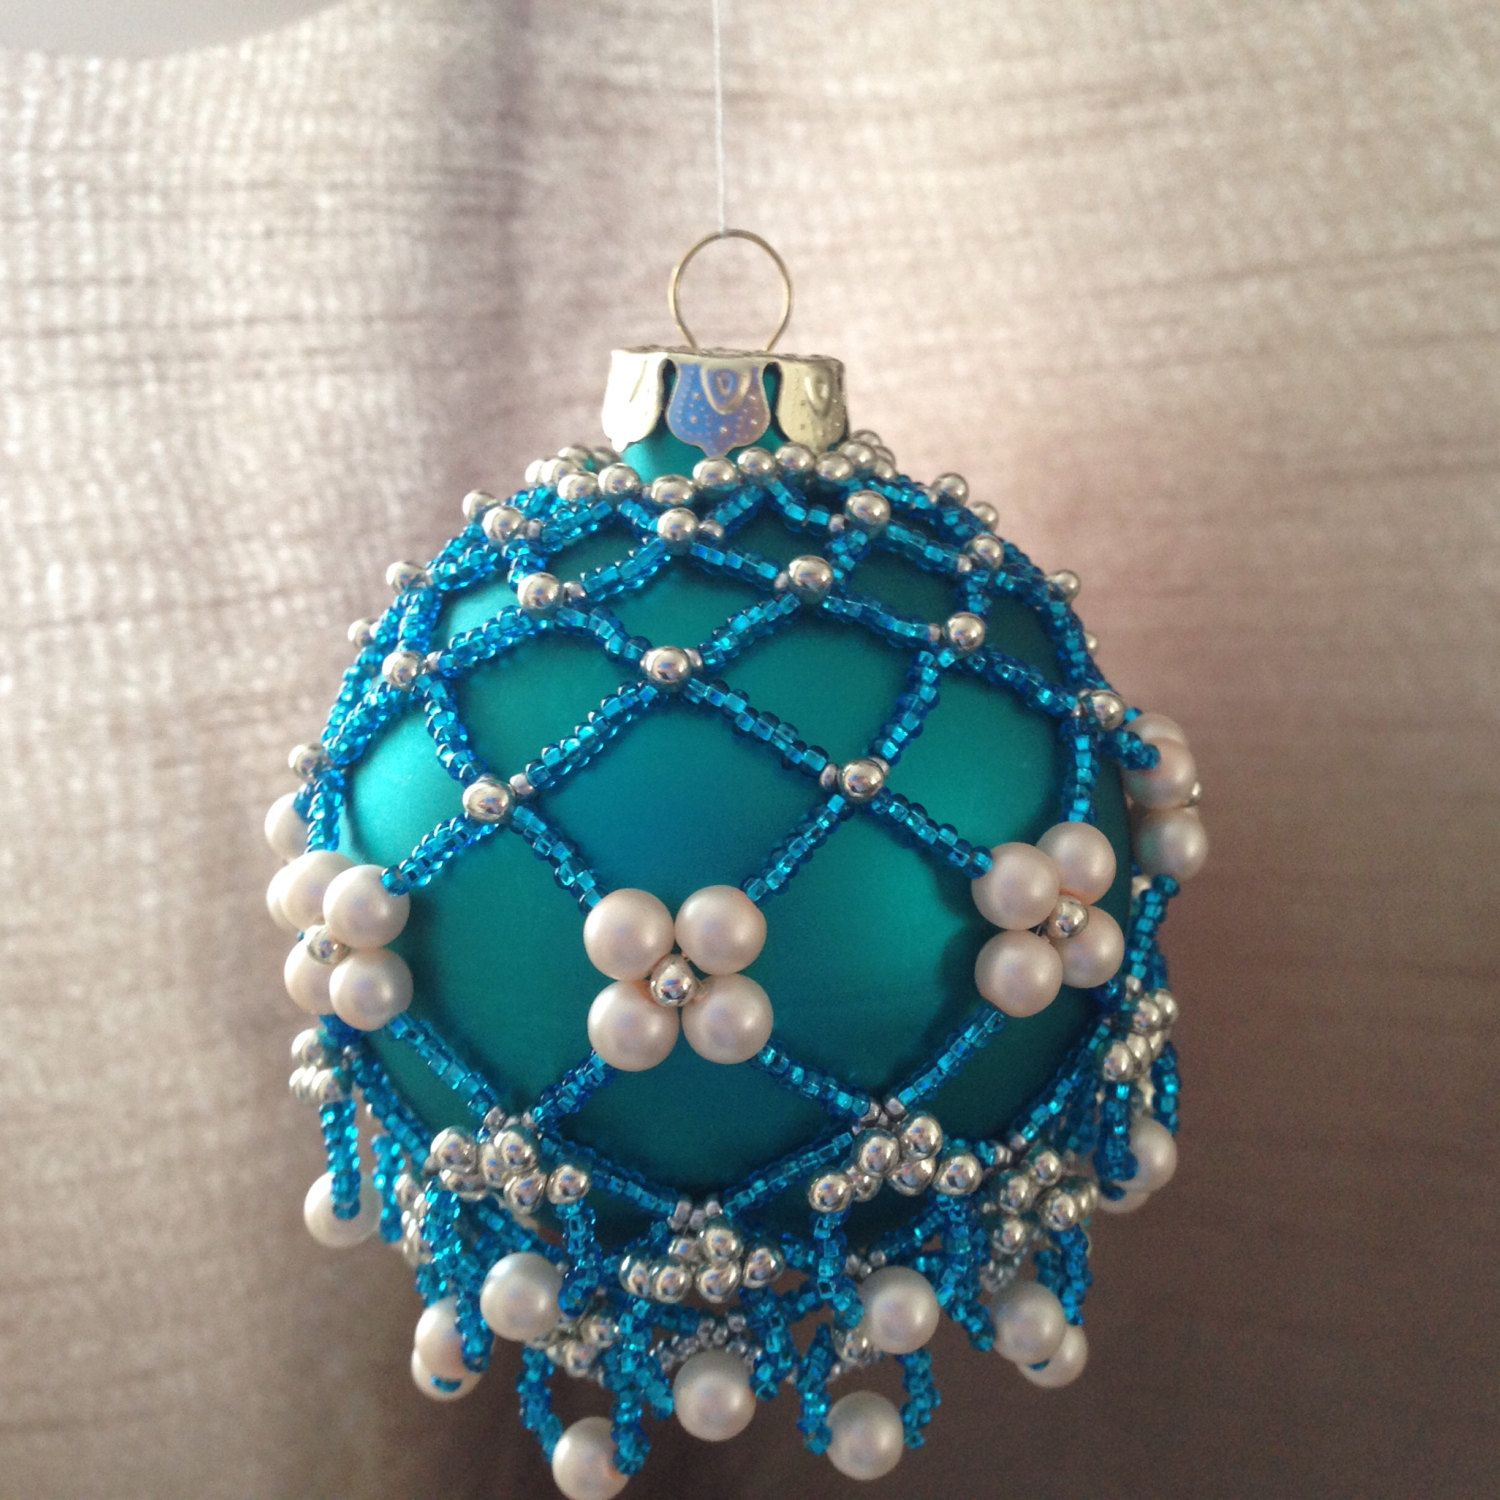 Beaded Ornament Cover Beaded Bauble Blue Silver Cream Pearls Frozen Colours Beaded Ornaments Beaded Ornament Covers Blue Baubles